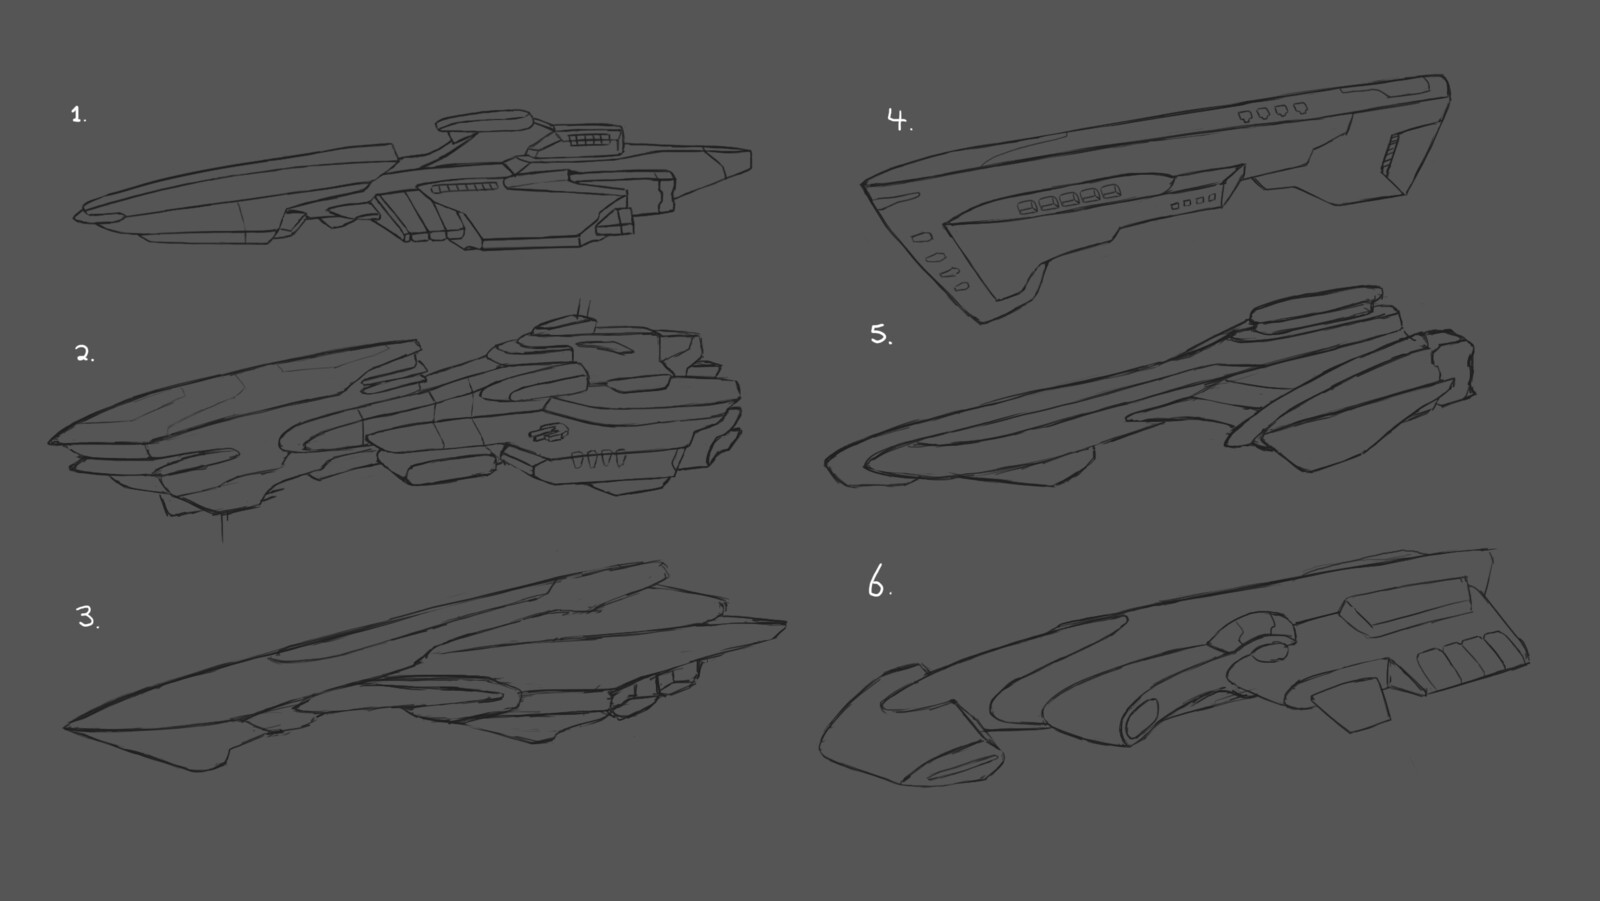 Mock sketchup concepts when designing the ship